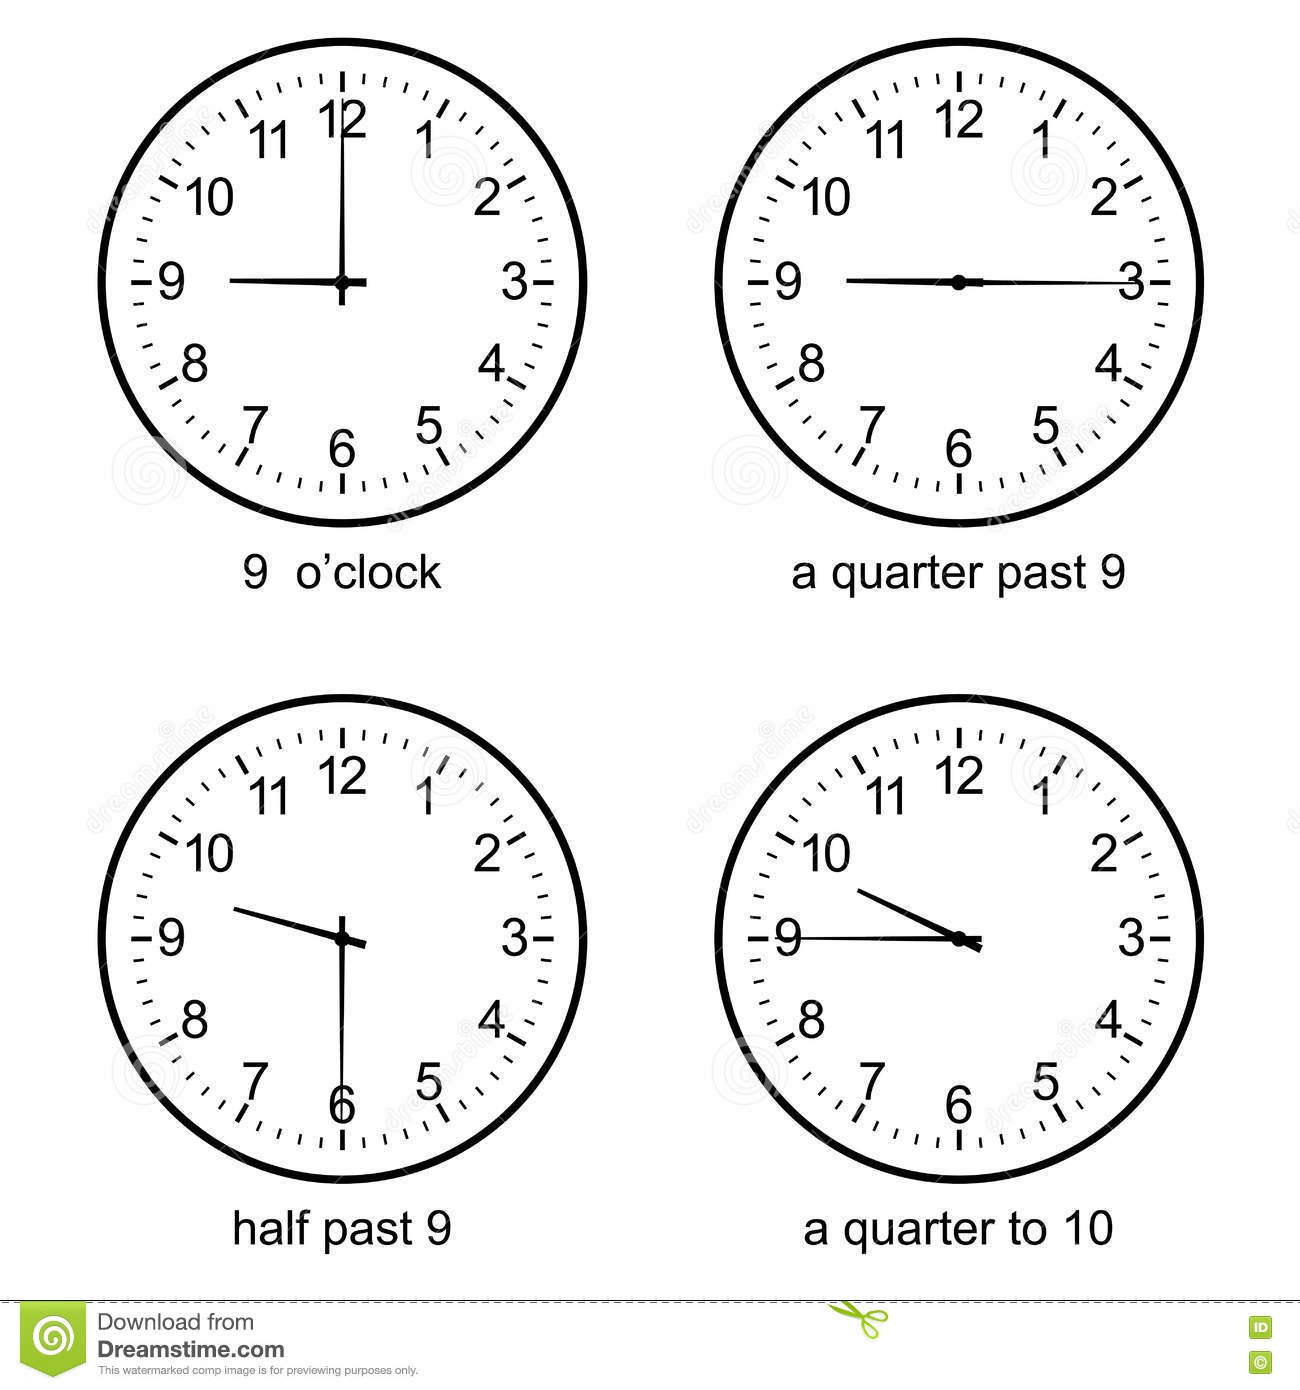 Worksheet Learning How To Tell Time learn to tell time scalien image of early learning wall clock vector stock